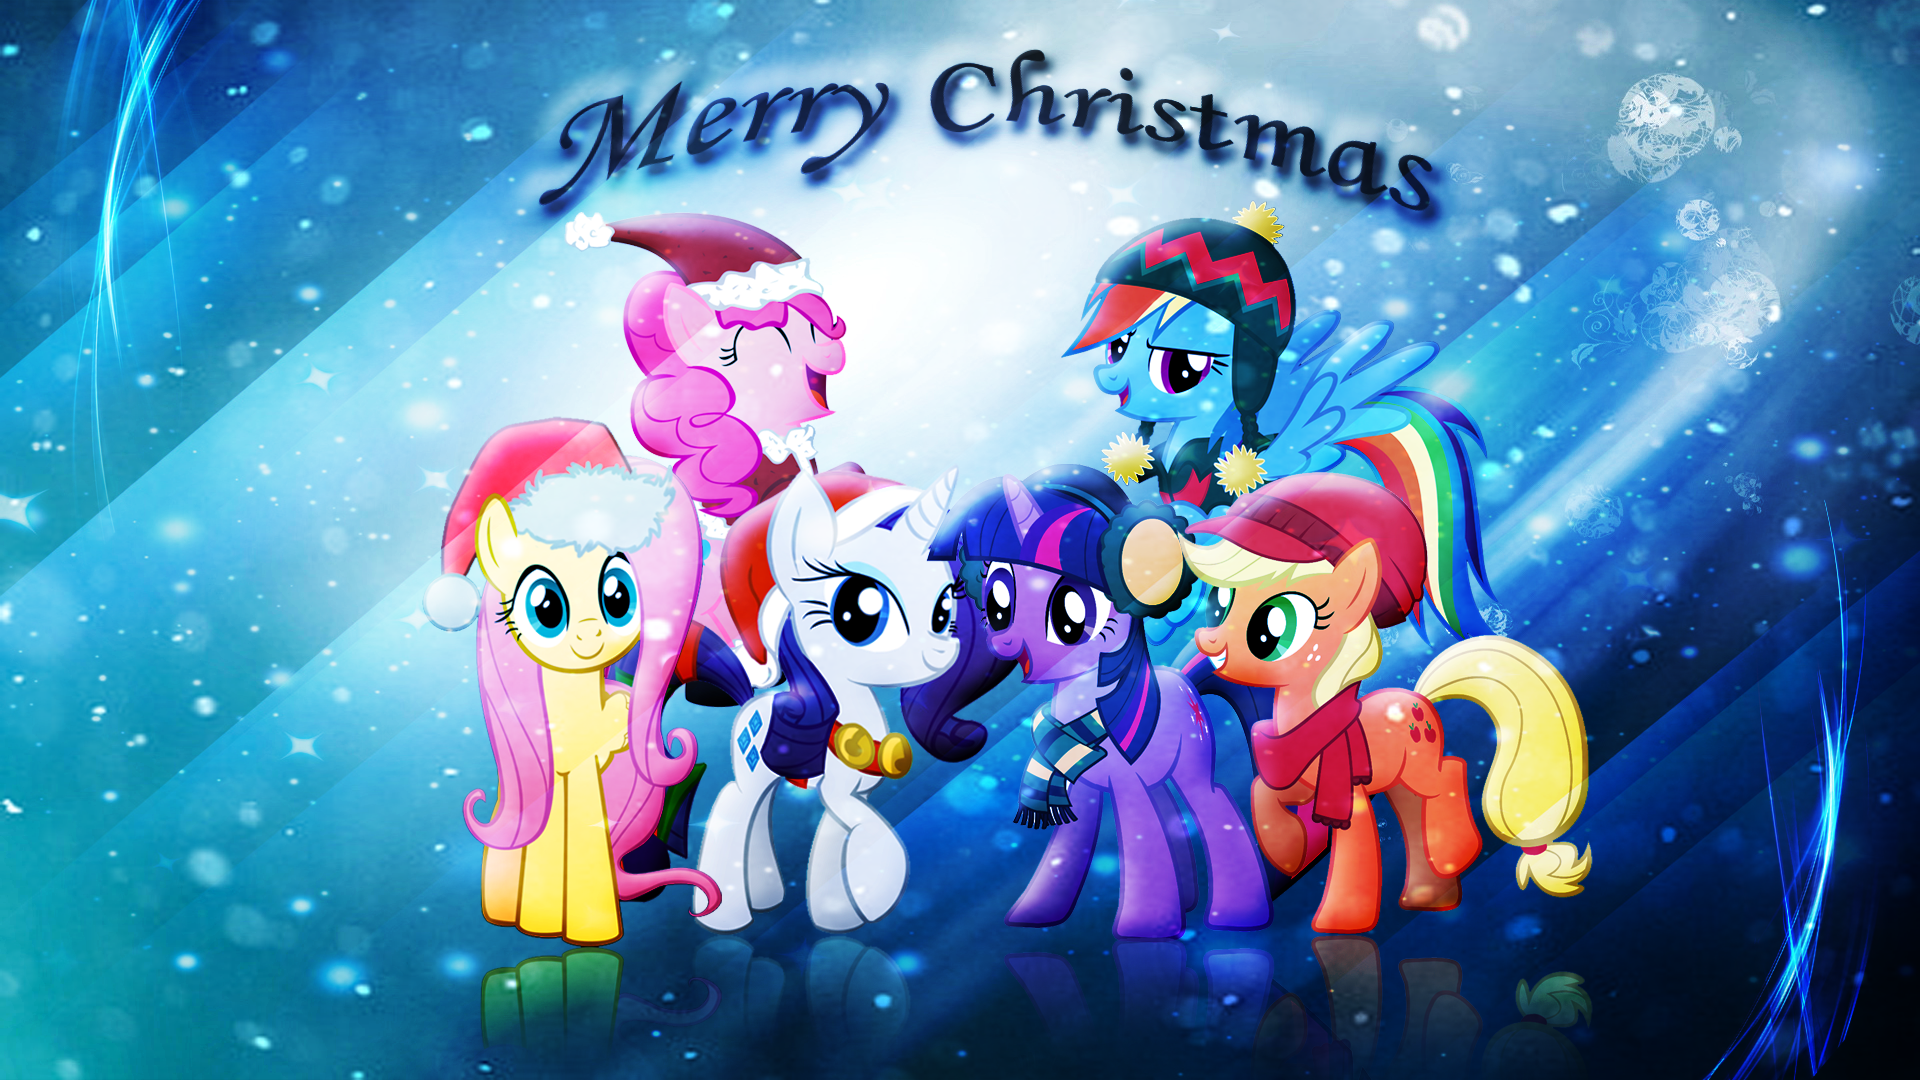 Mlp Christmas.Merry Christmas General Discussion Mlp Forums